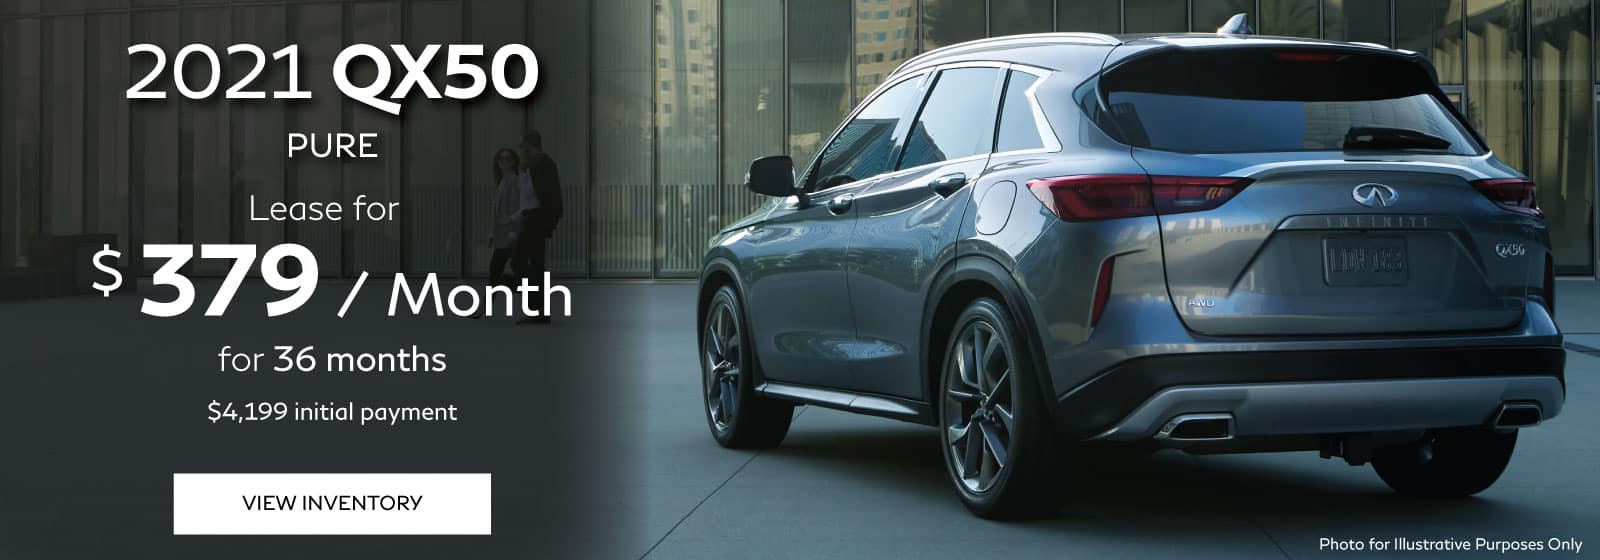 Lease special for the 2021 INFINITI QX50